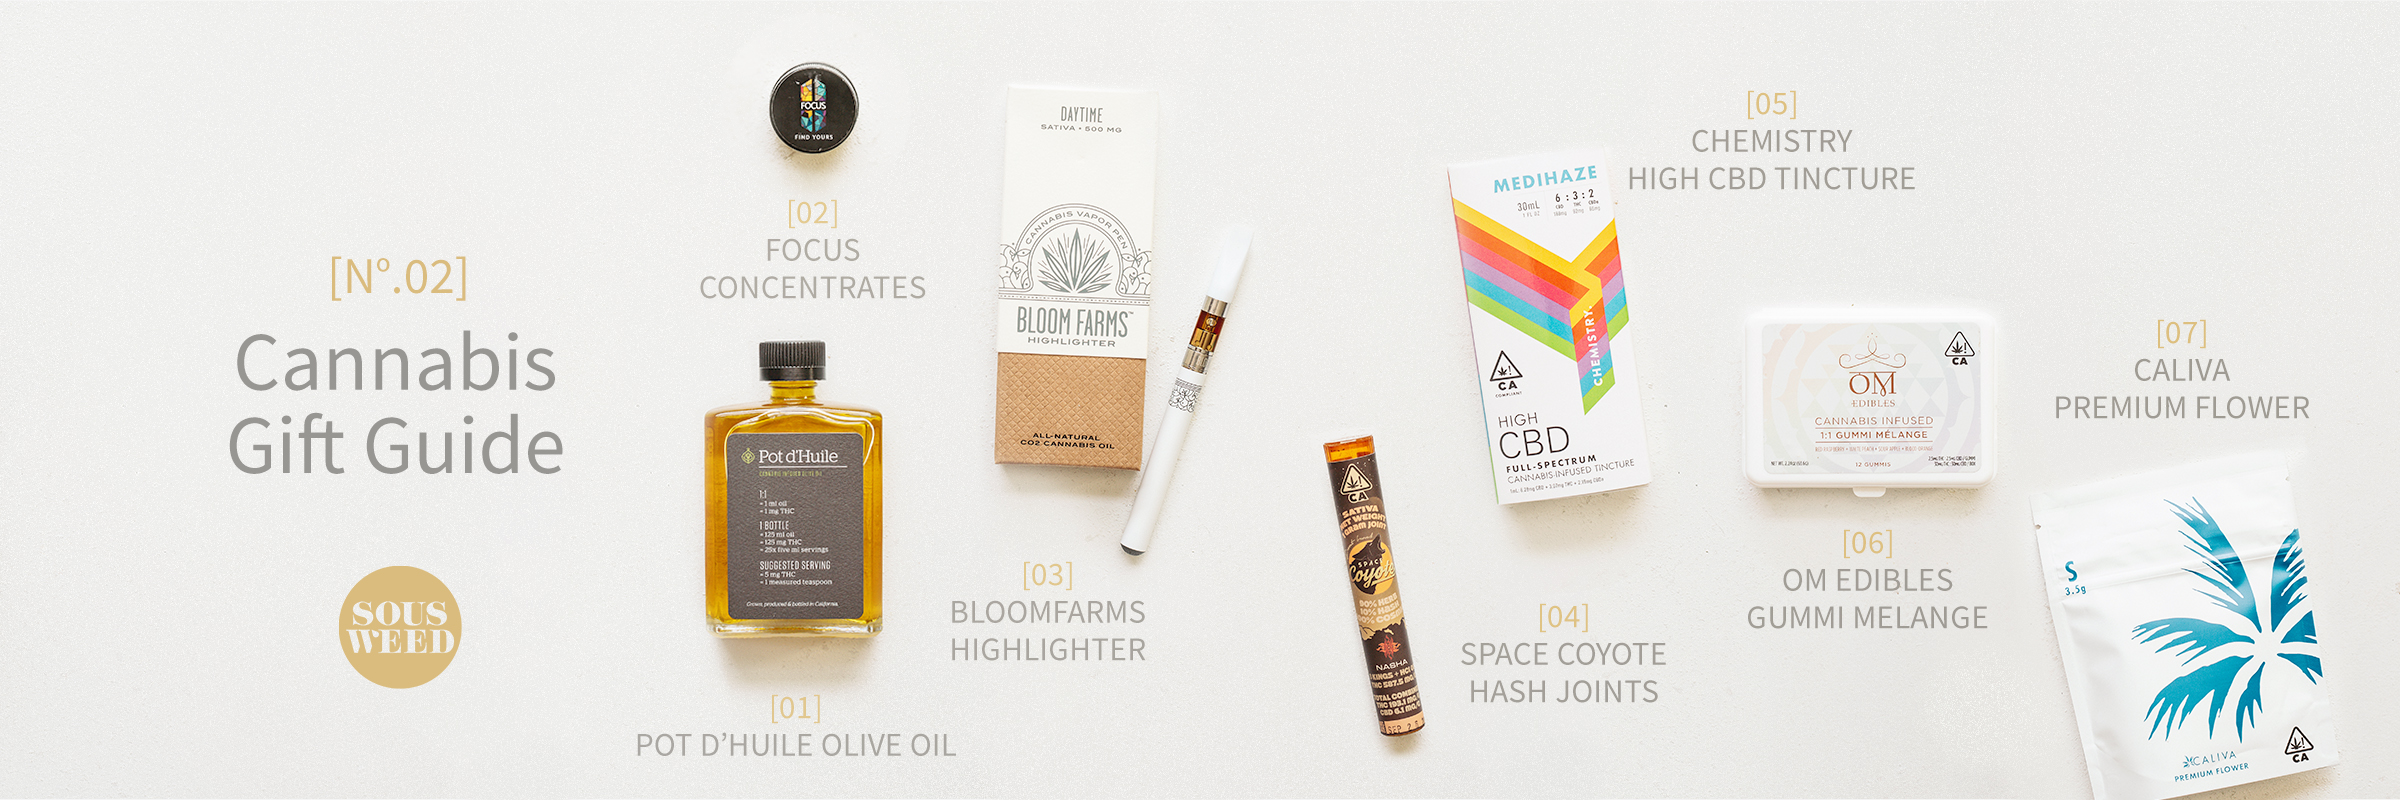 SousWeed_GiftGuide2_Cannabis.jpg